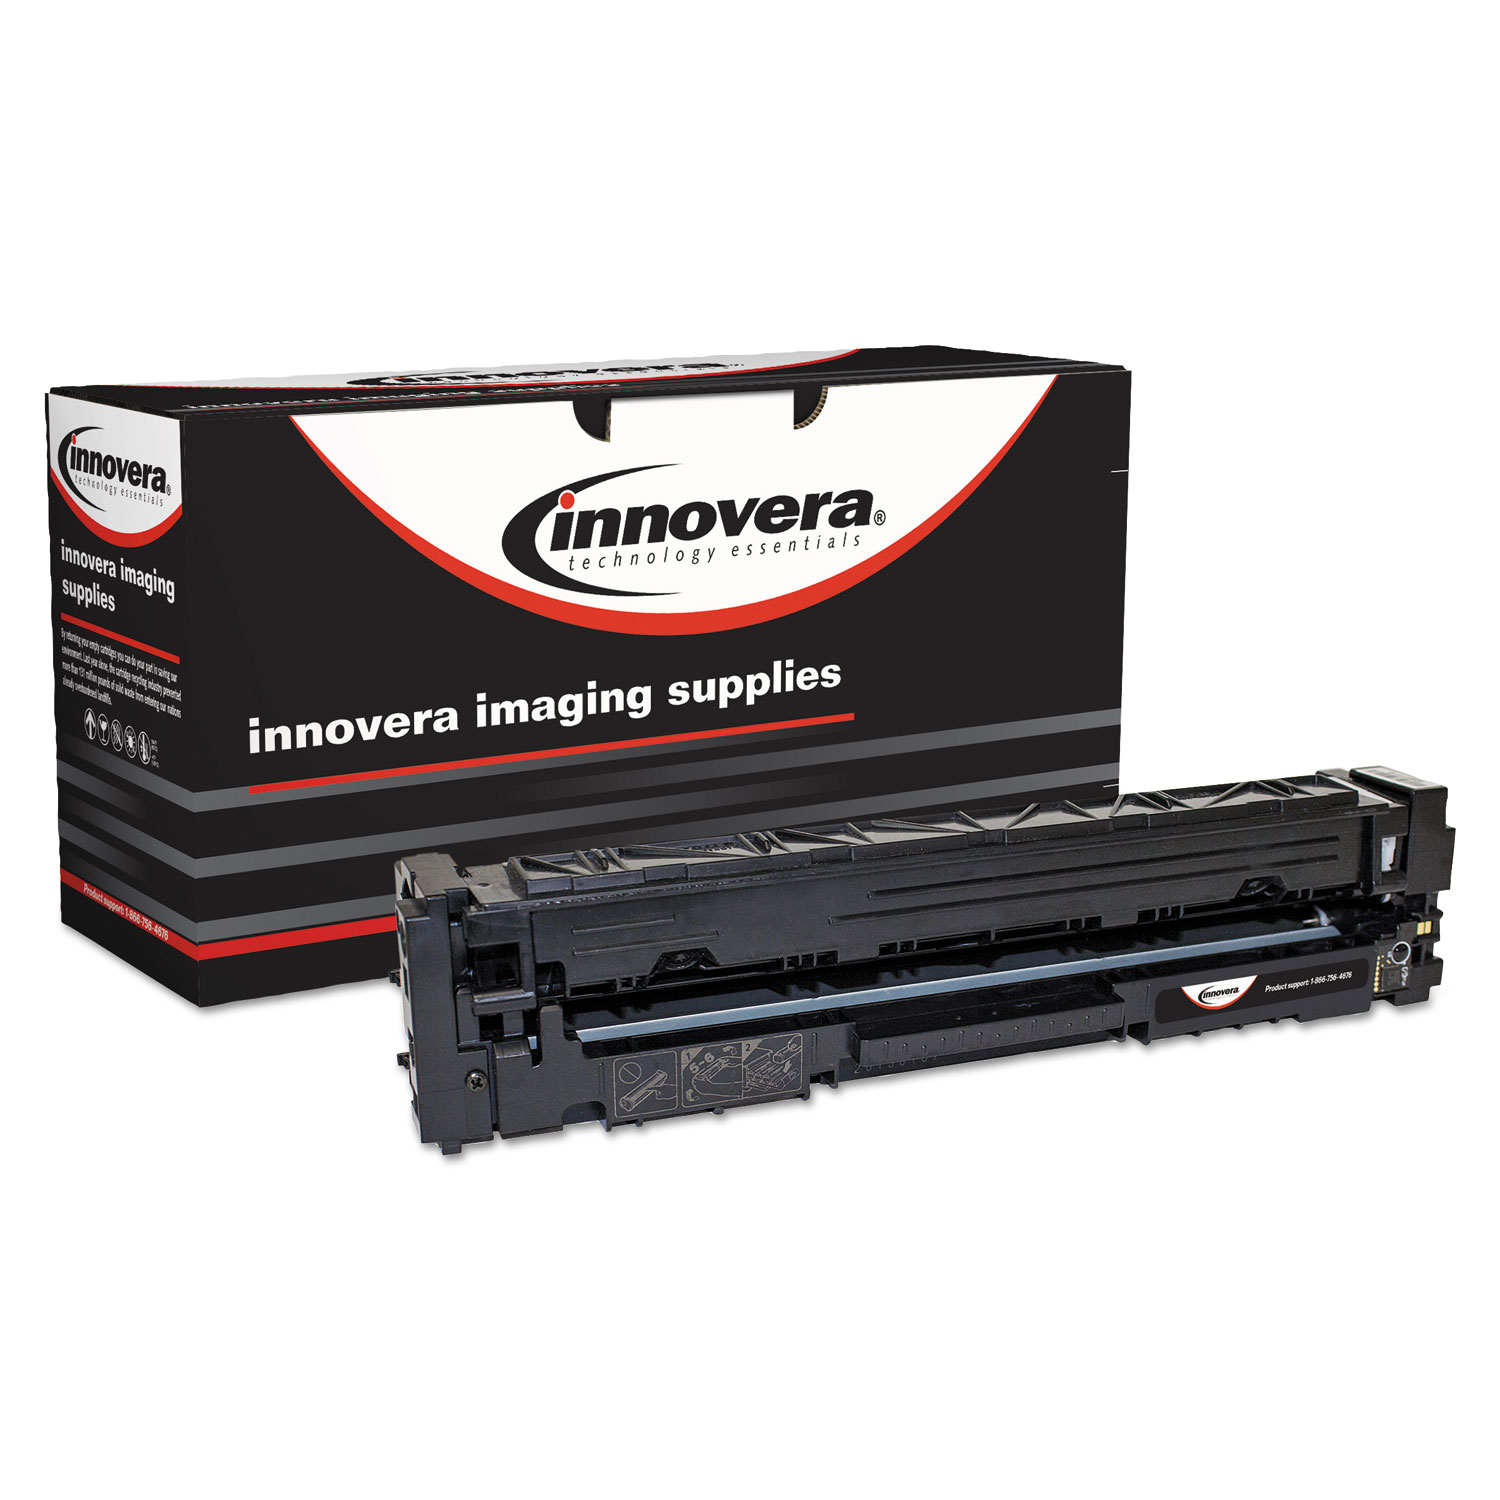 Remanufactured CF400A (201A) Toner, 1500 Page-Yield, Black